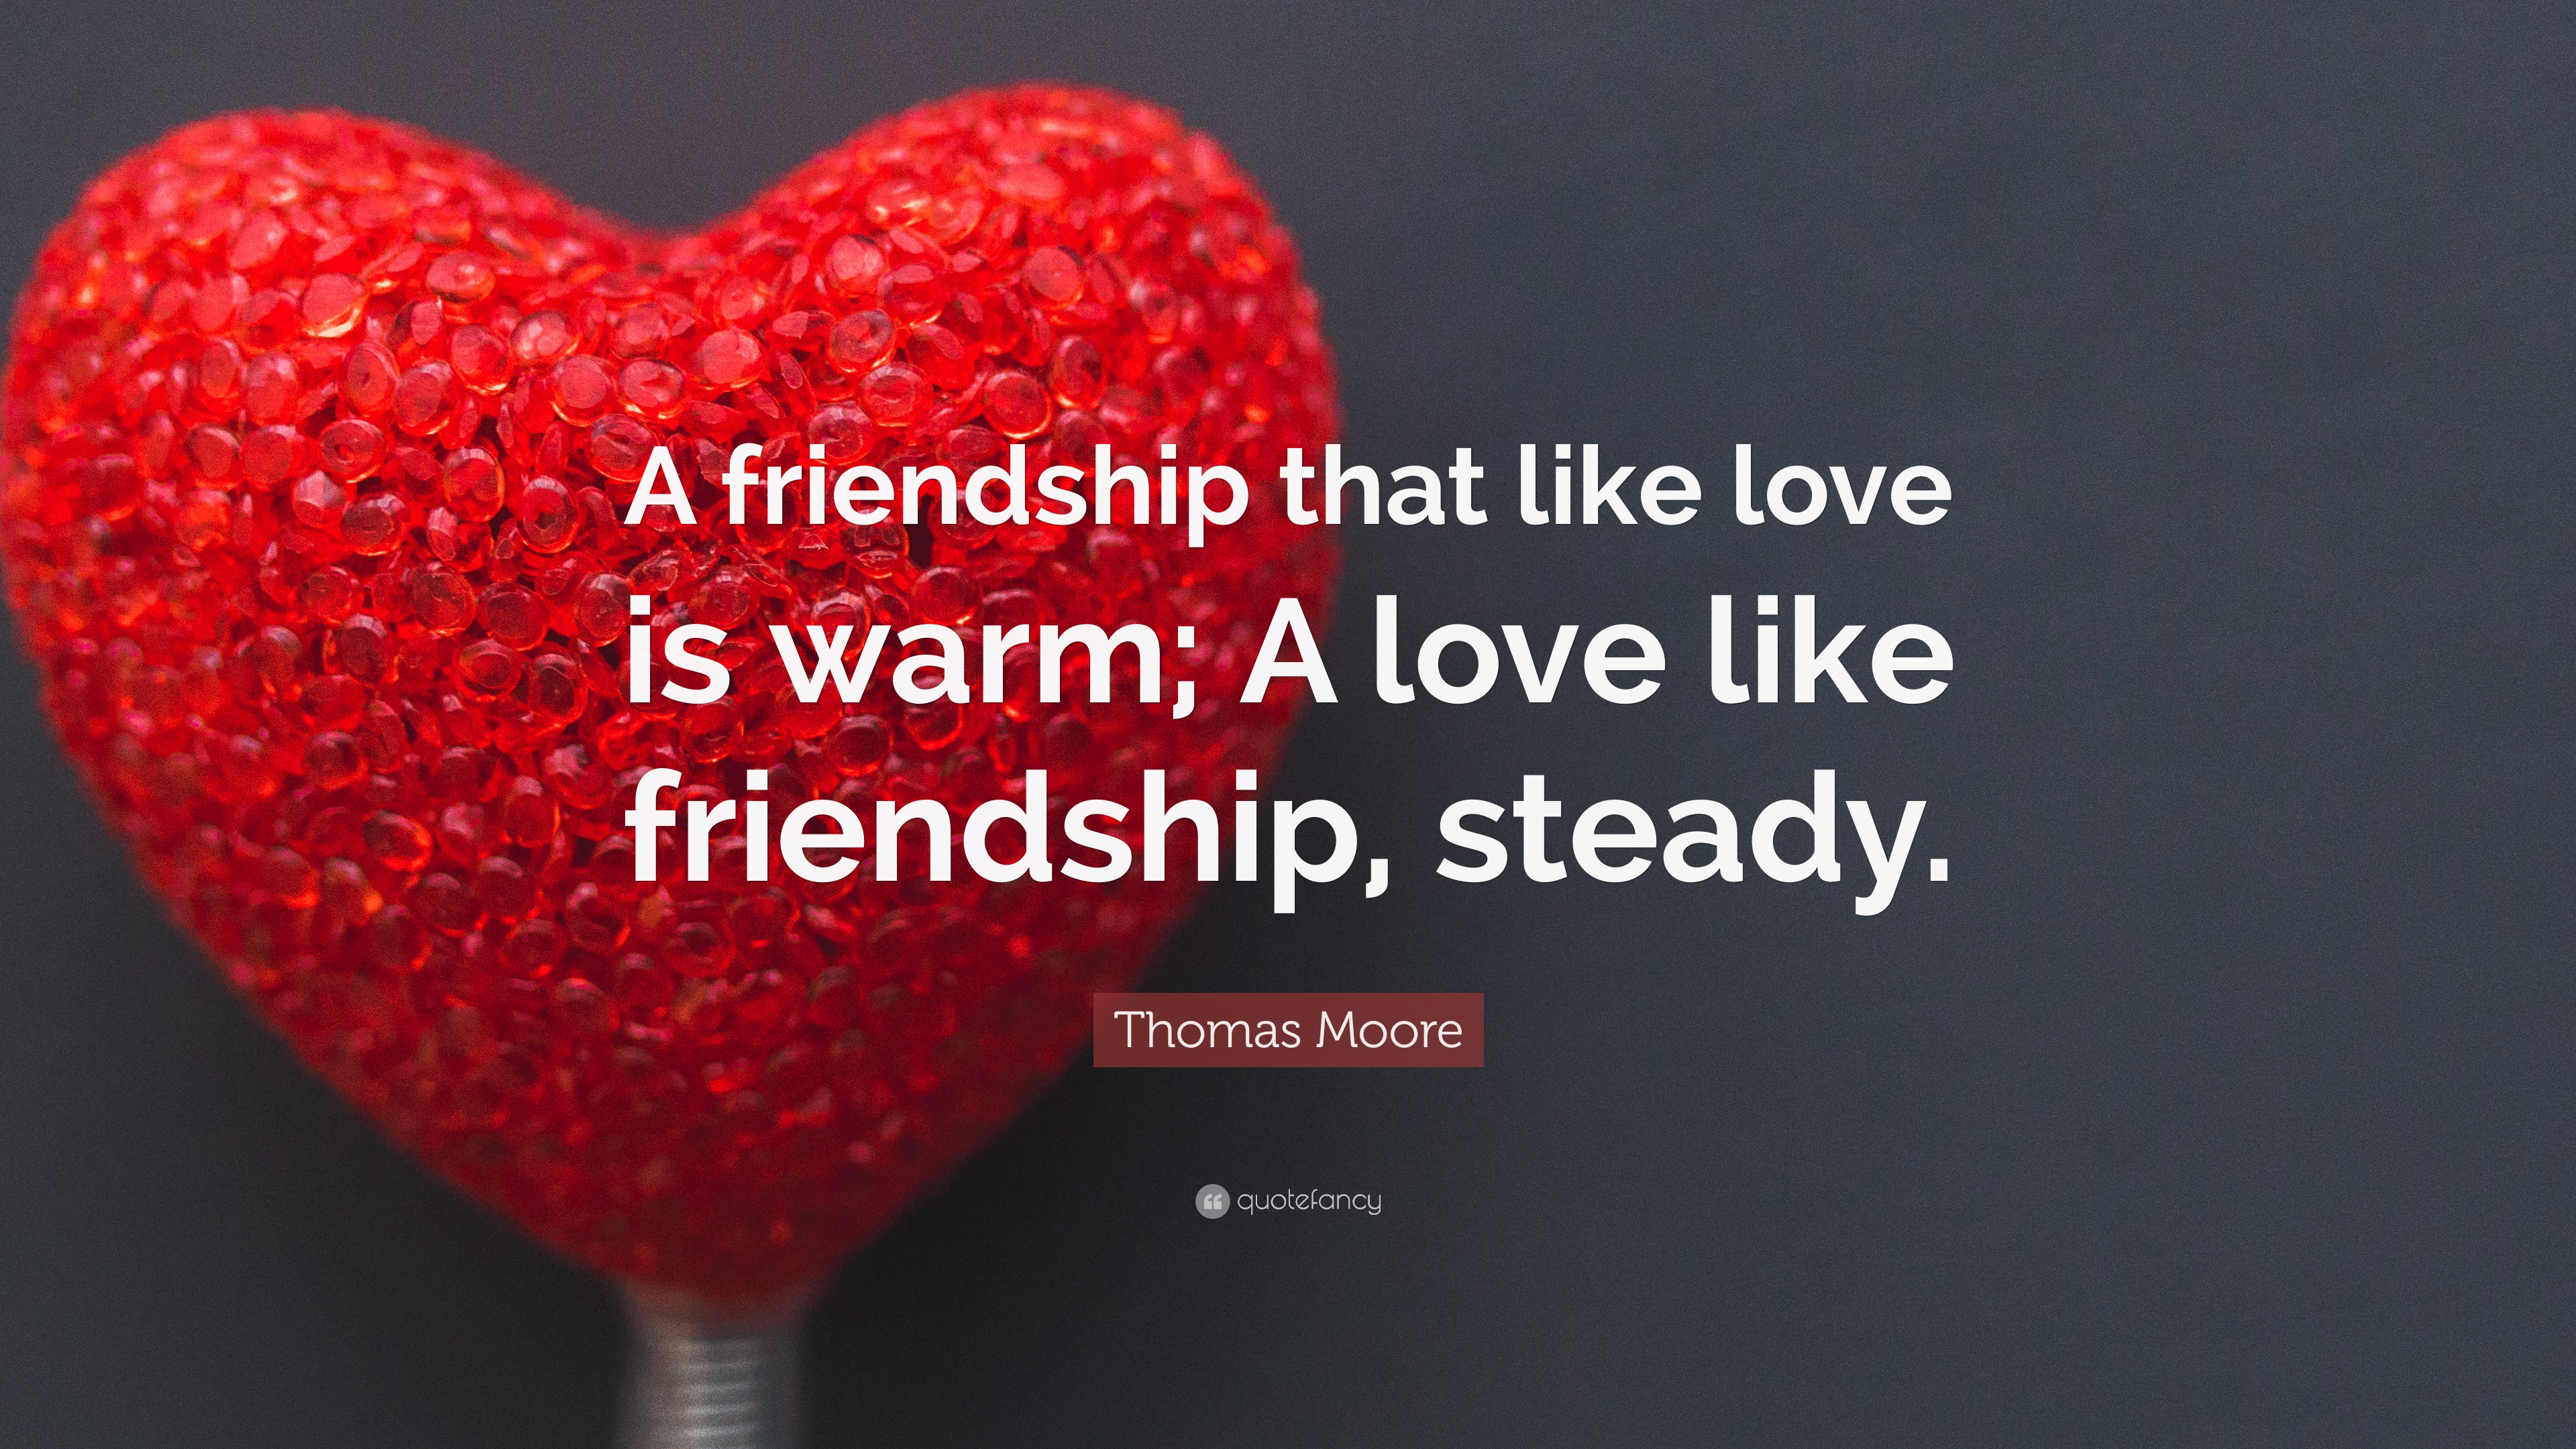 Valentine Day Quotes For Friends Valentine's Day Quotes 40 Wallpapers  Quotefancy